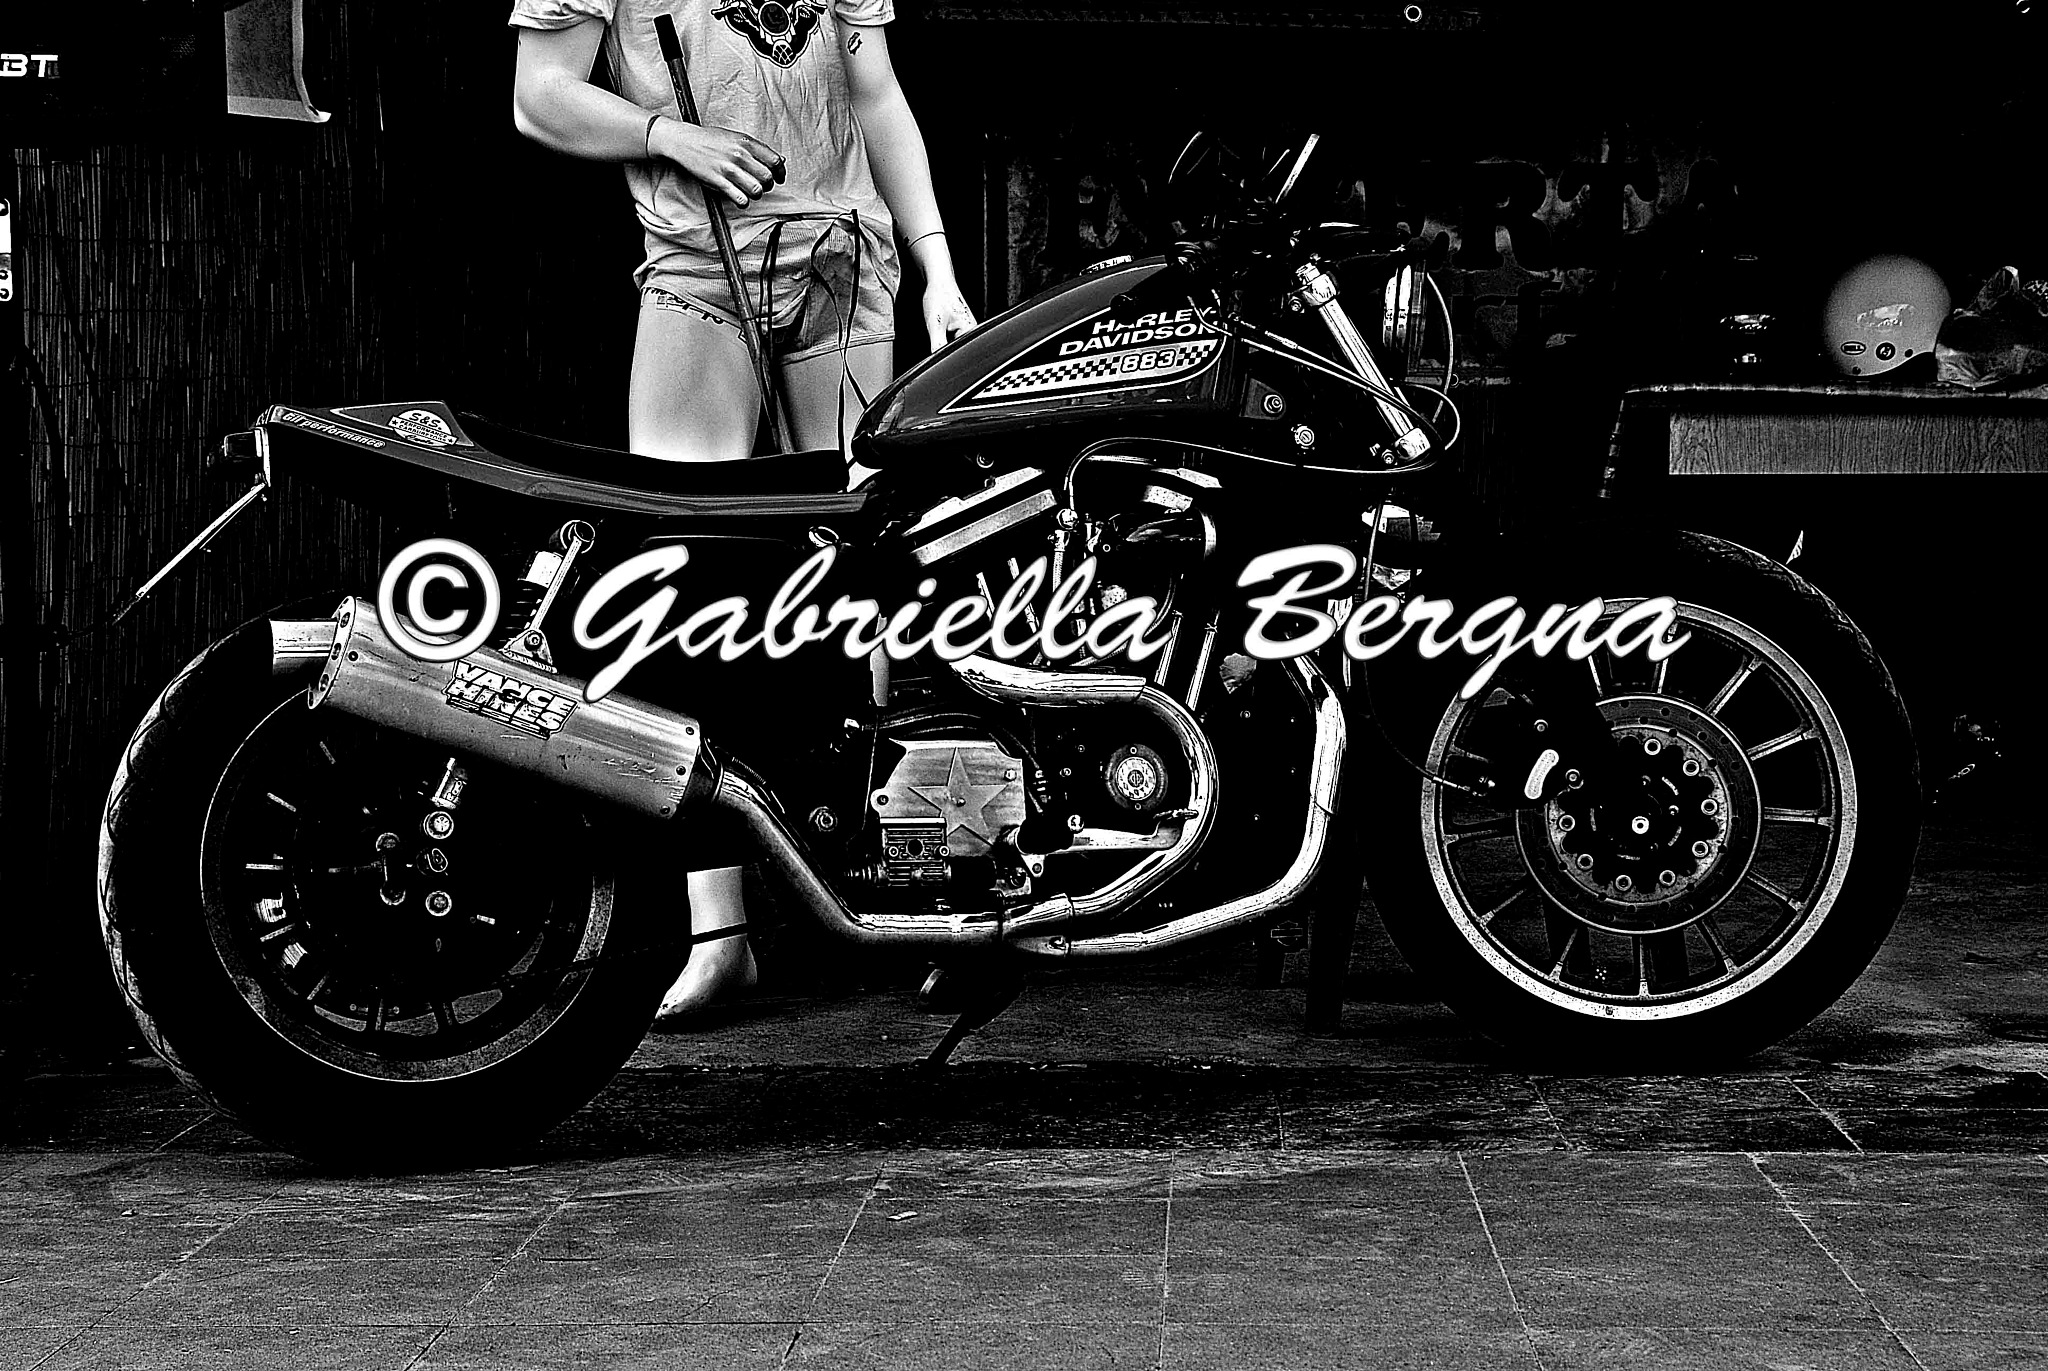 HD Sportster Racing by Gabriella Bergna